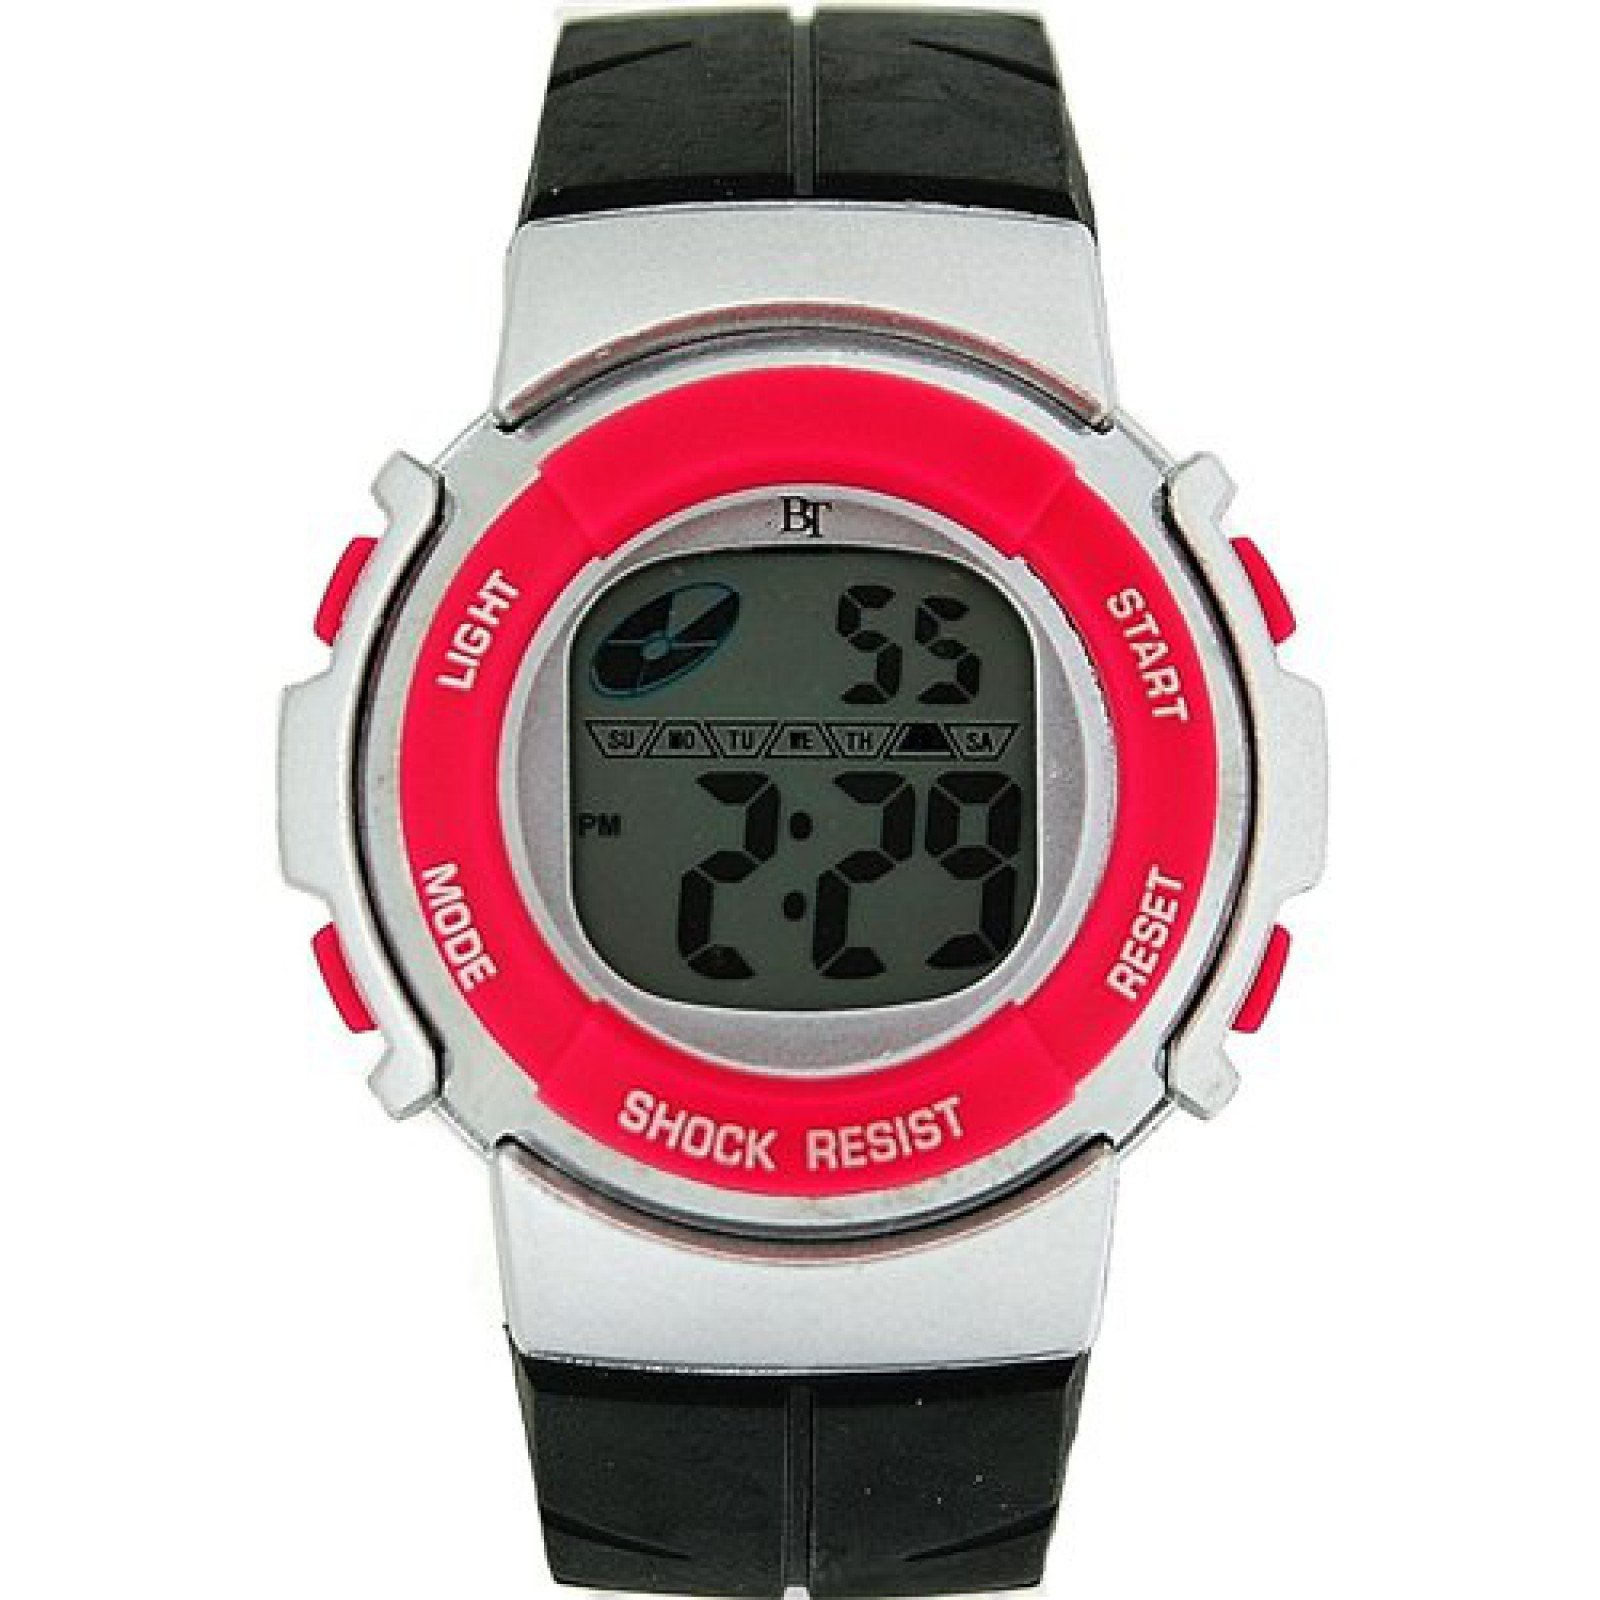 The Olivia Collection Childrens Digital Chronograph Black & Pink Sports Watch